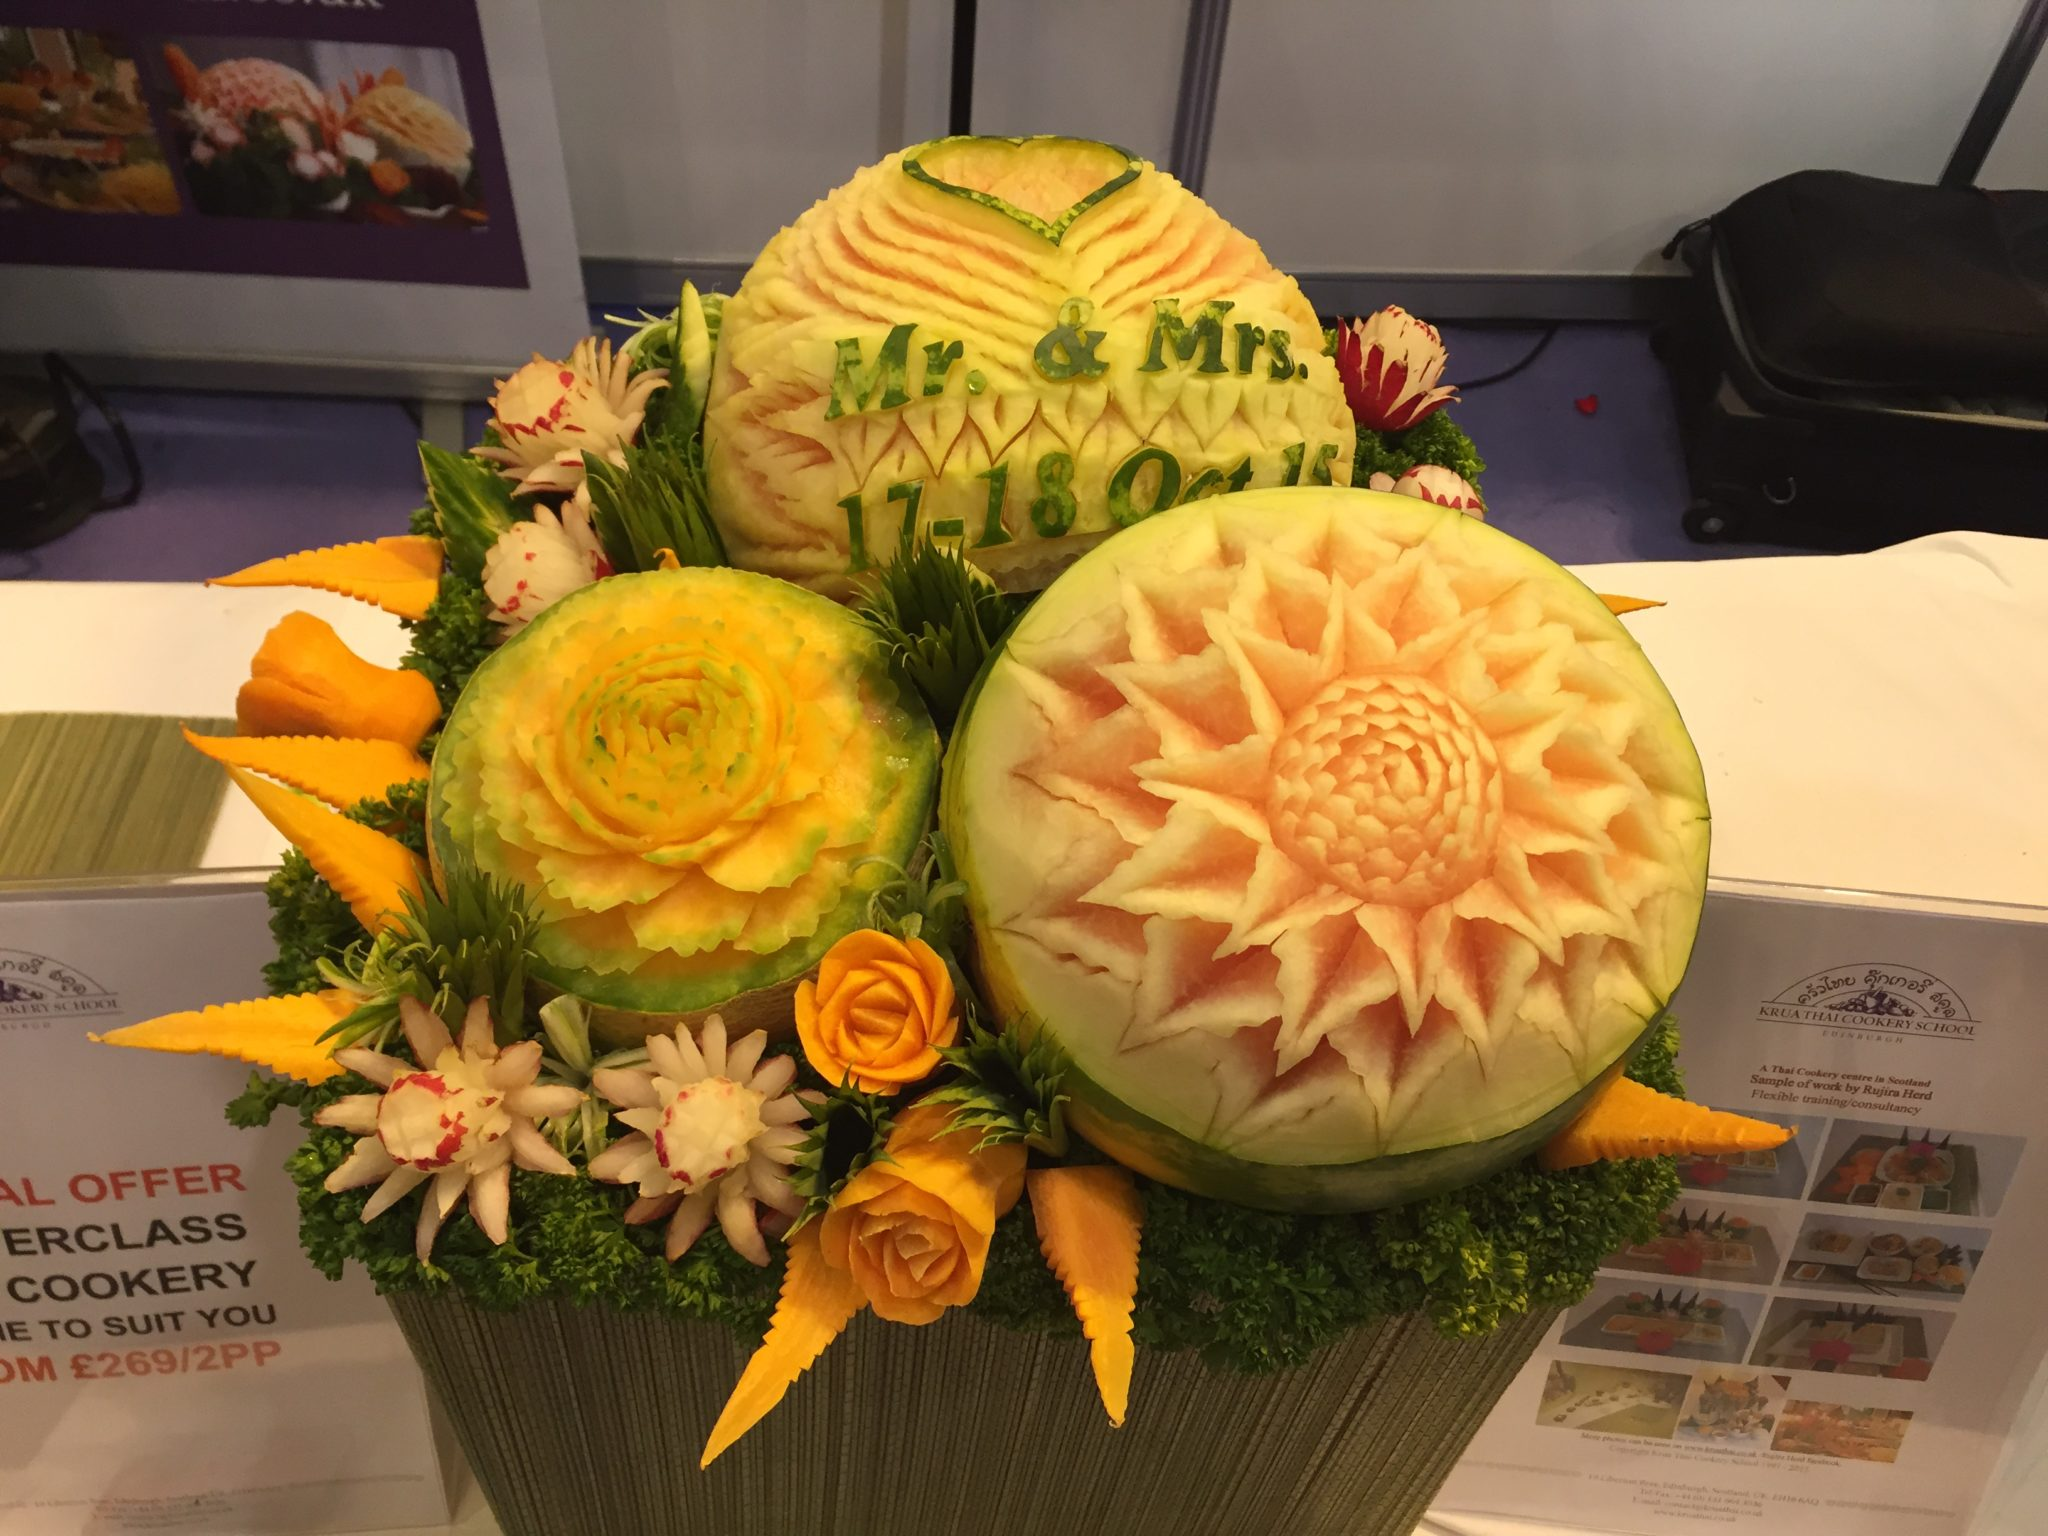 5. I Love Fruit personalised carving